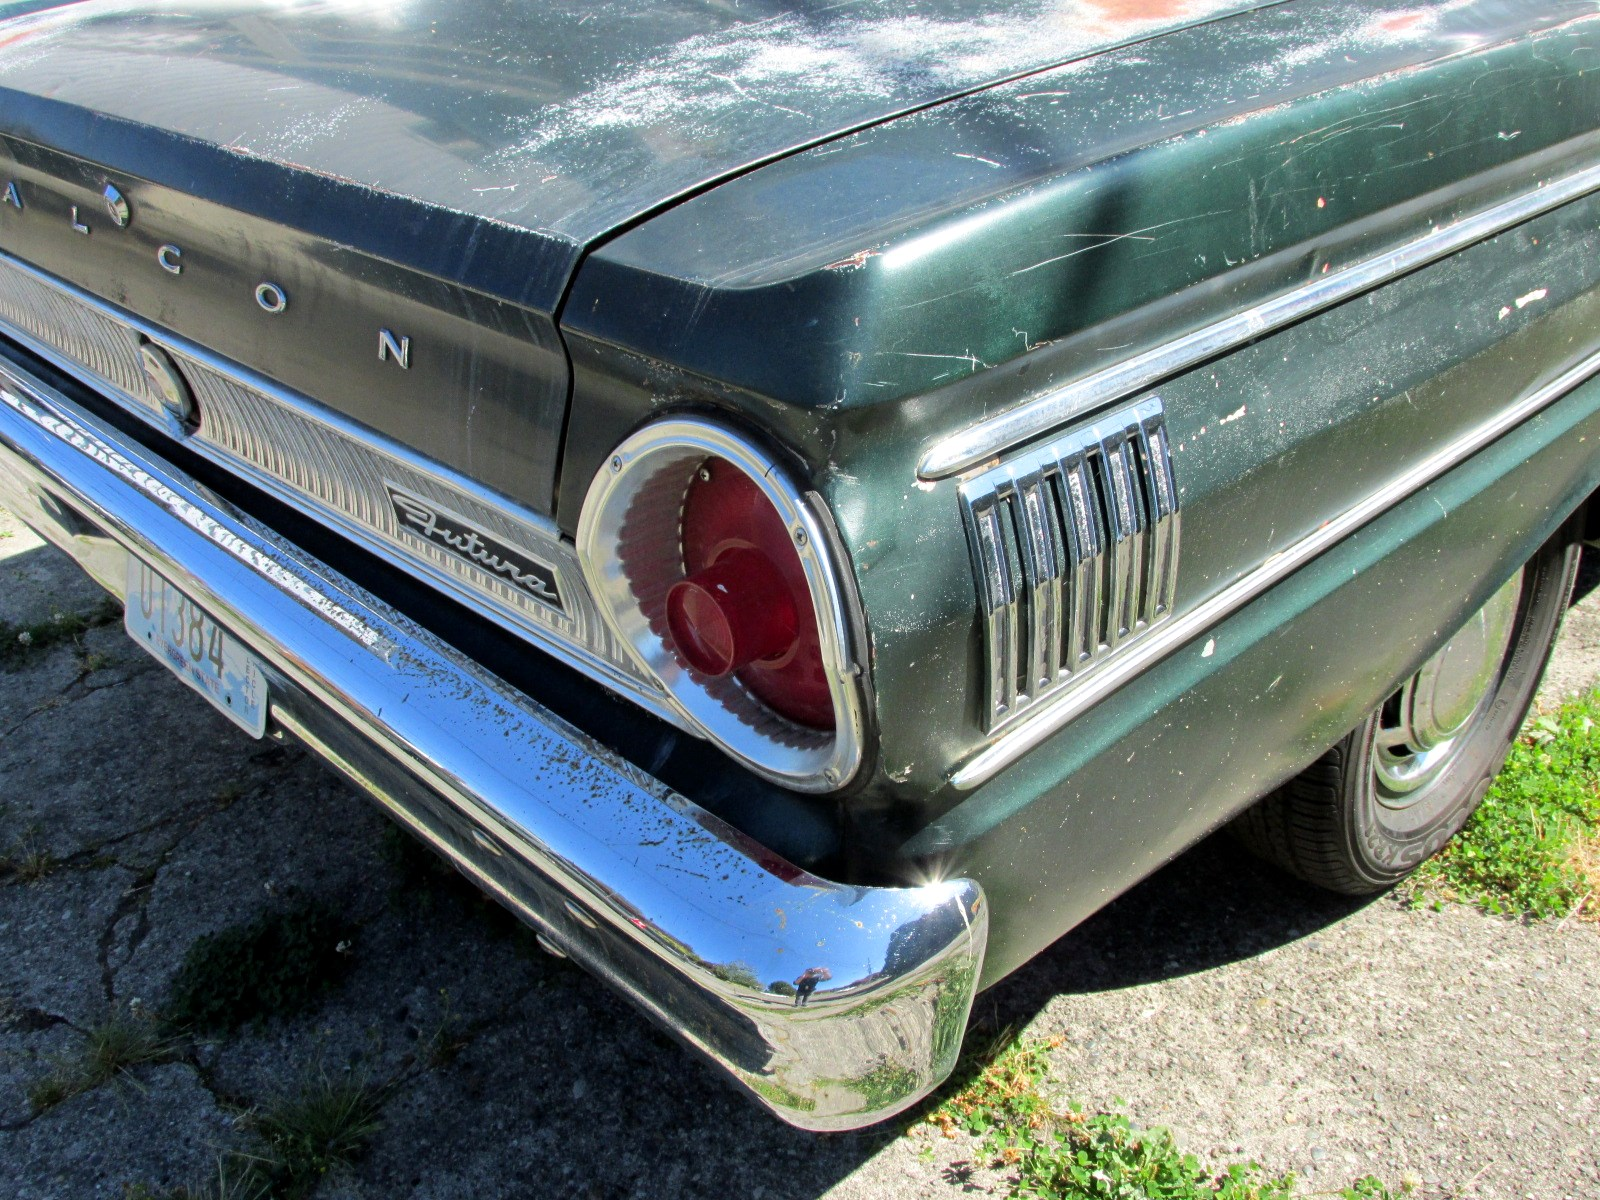 Seattles Classics 1964 Ford Falcon Futura Sedan Convertible